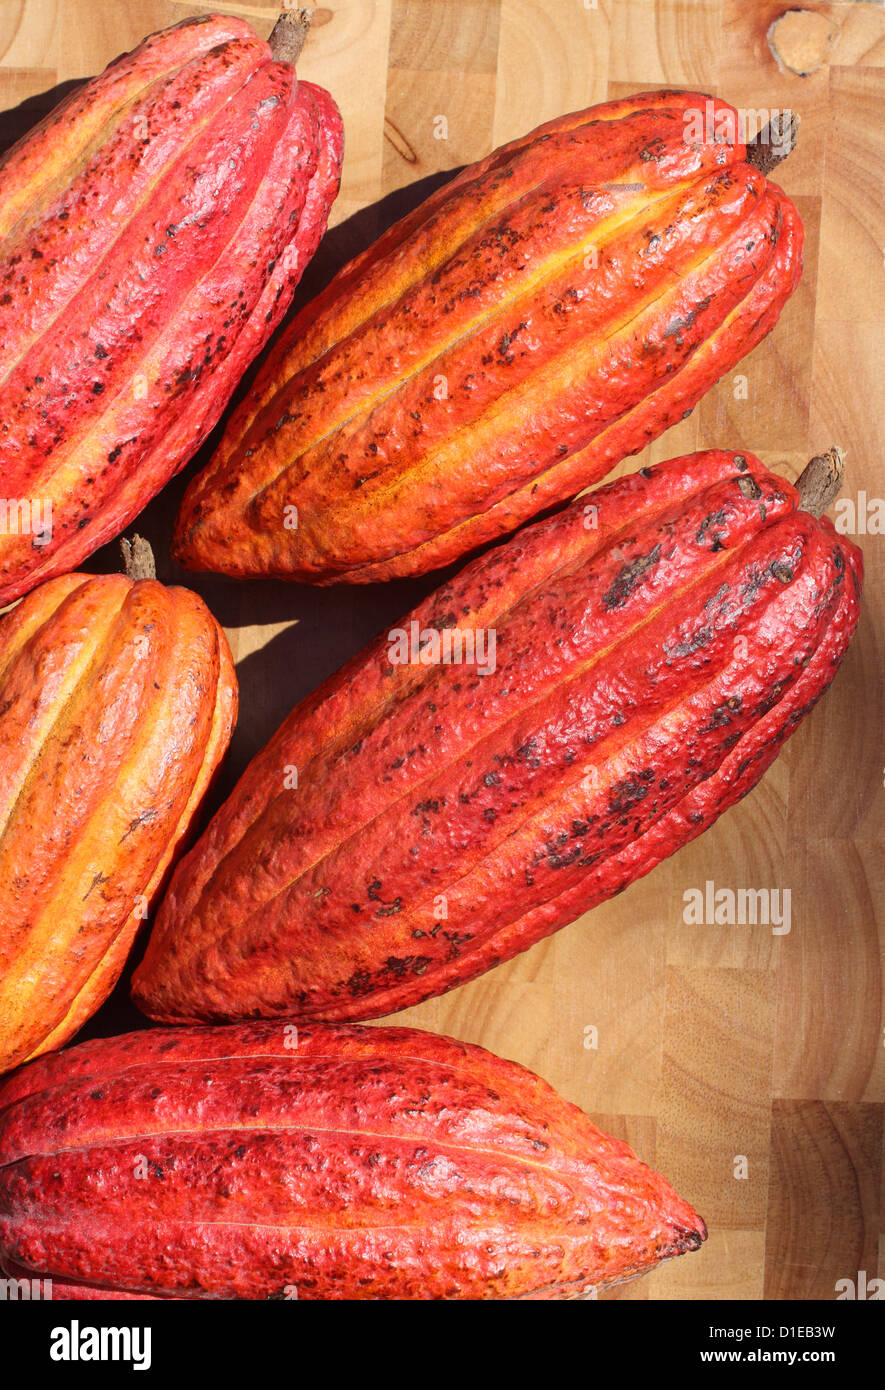 Grenada. Close-up of ripe Cacao (Cocoa) fruits. - Stock Image